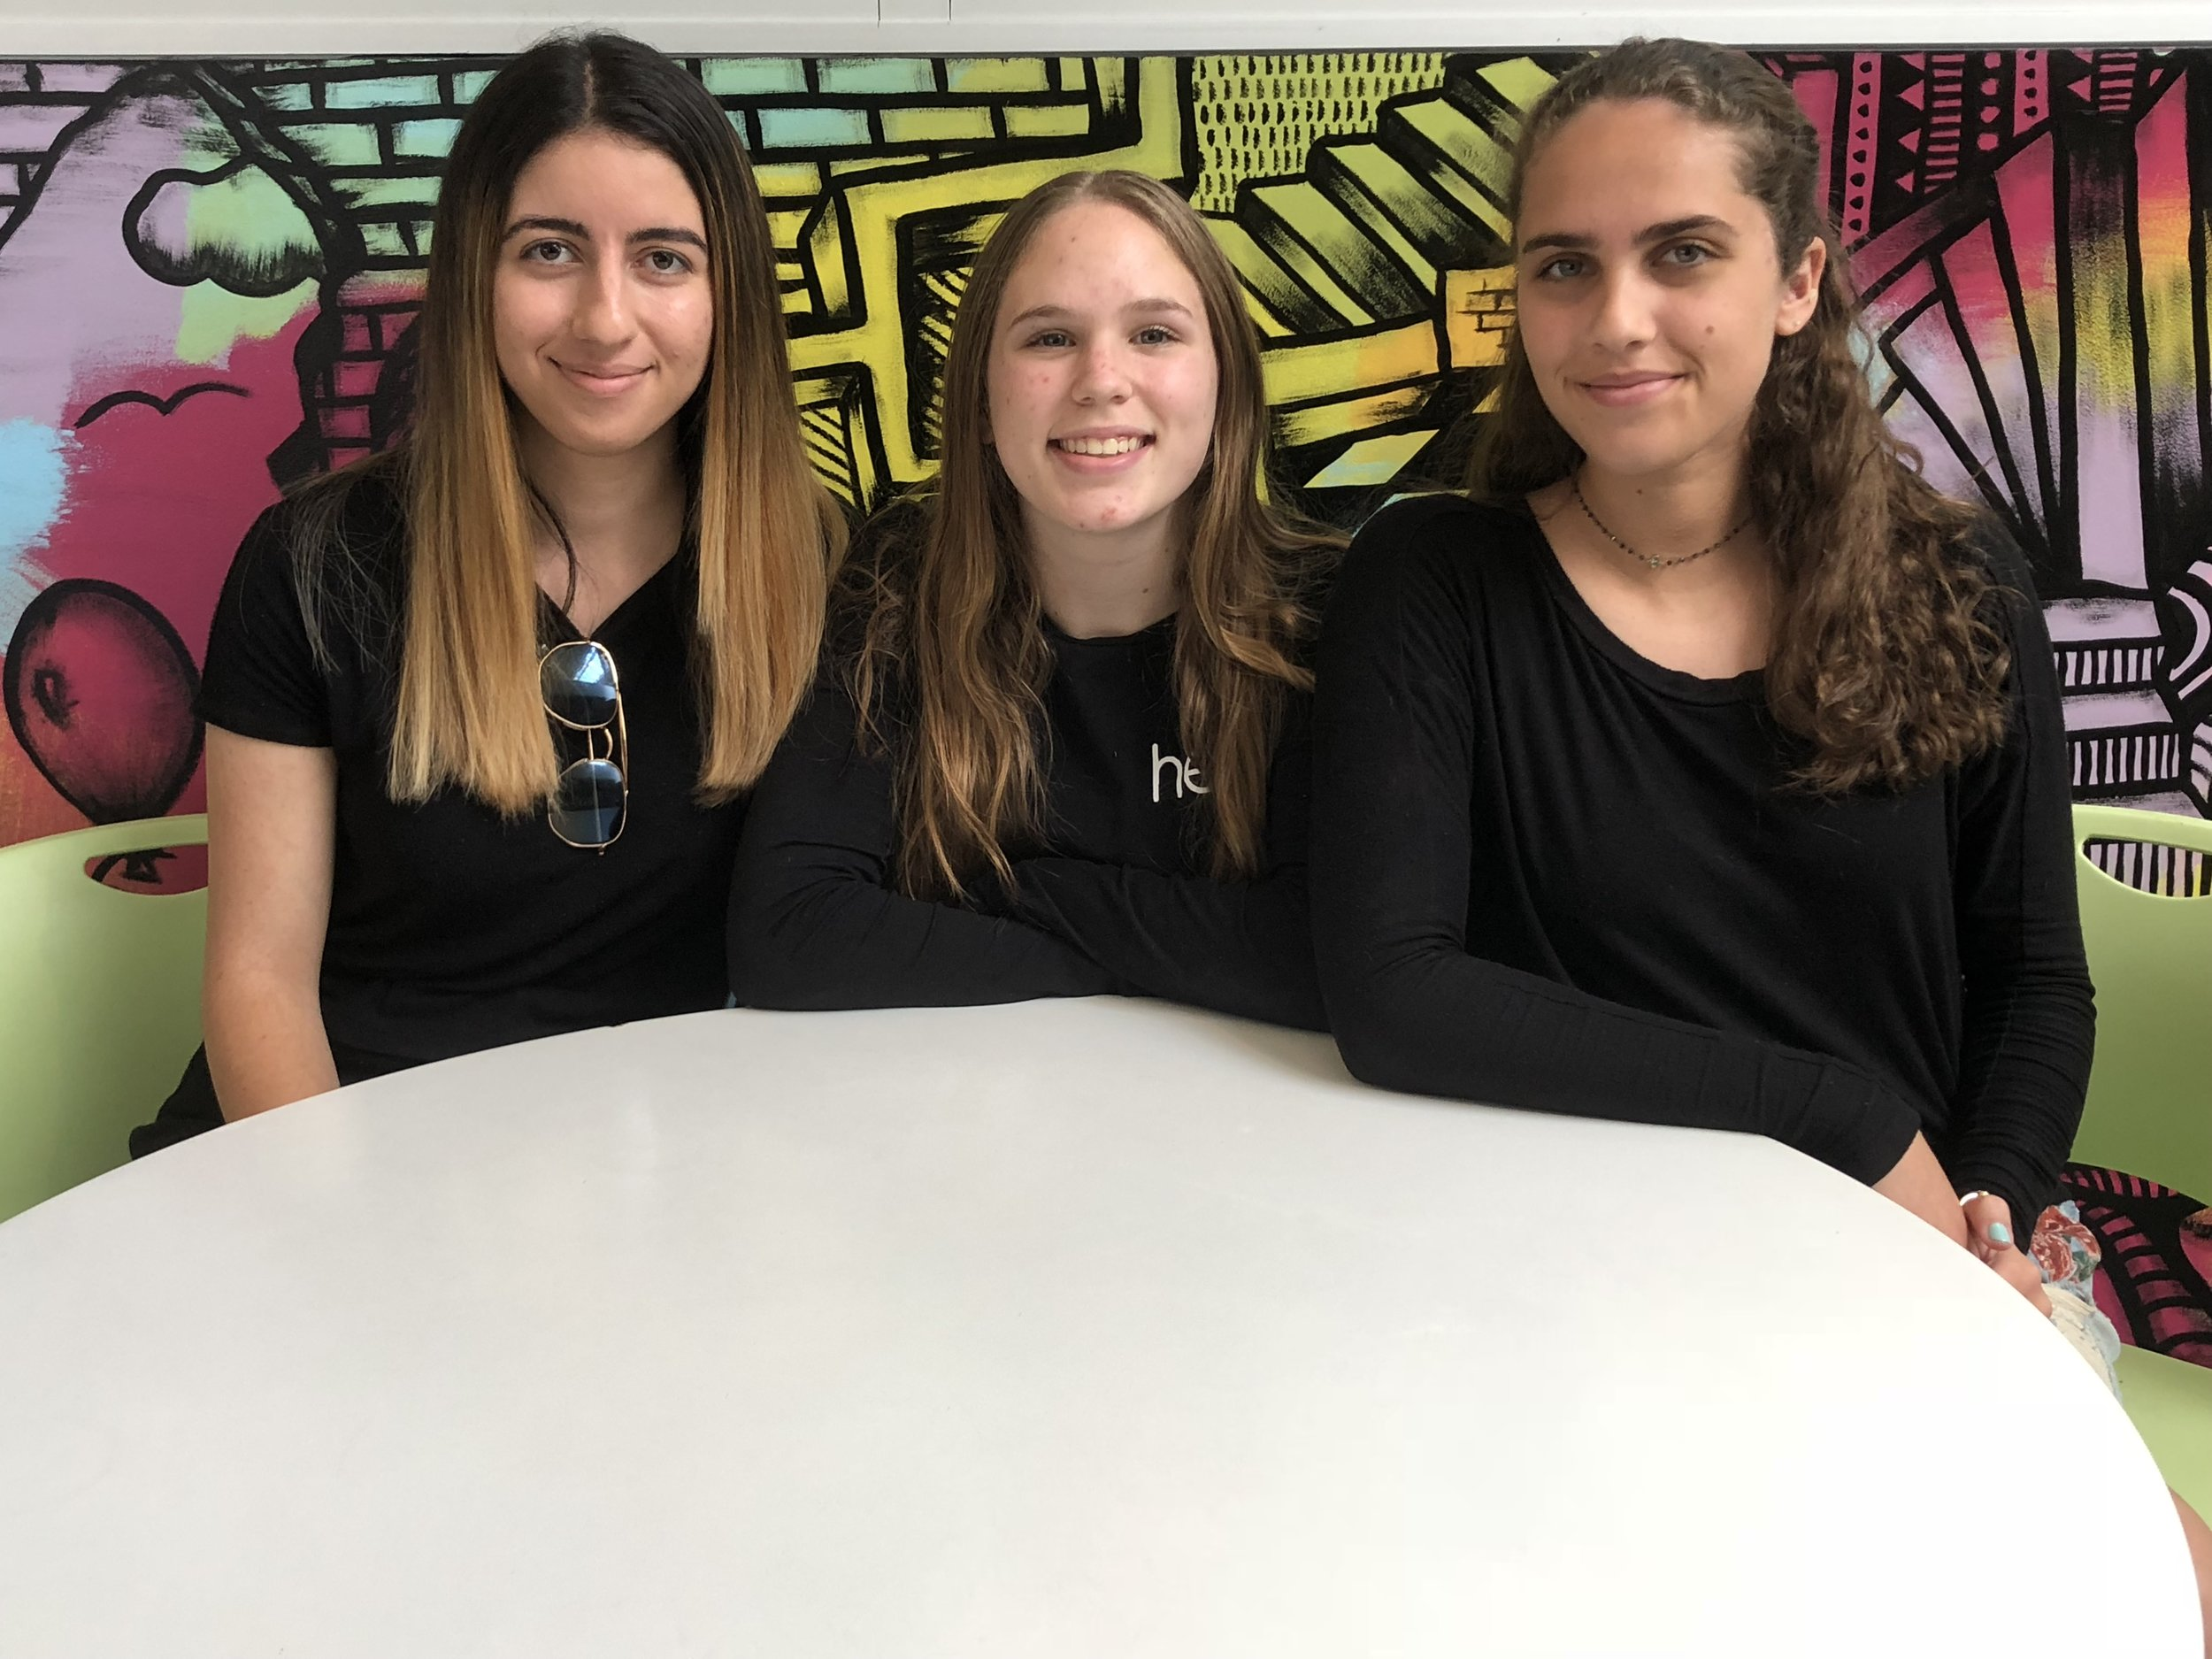 These budding entrepreneurs spent this past summer focused on tackling the issue of safety for women head on by developing a line of button-activated smart jewelry made to contact help in an emergency situation. Come meet the founders of   HERO  !